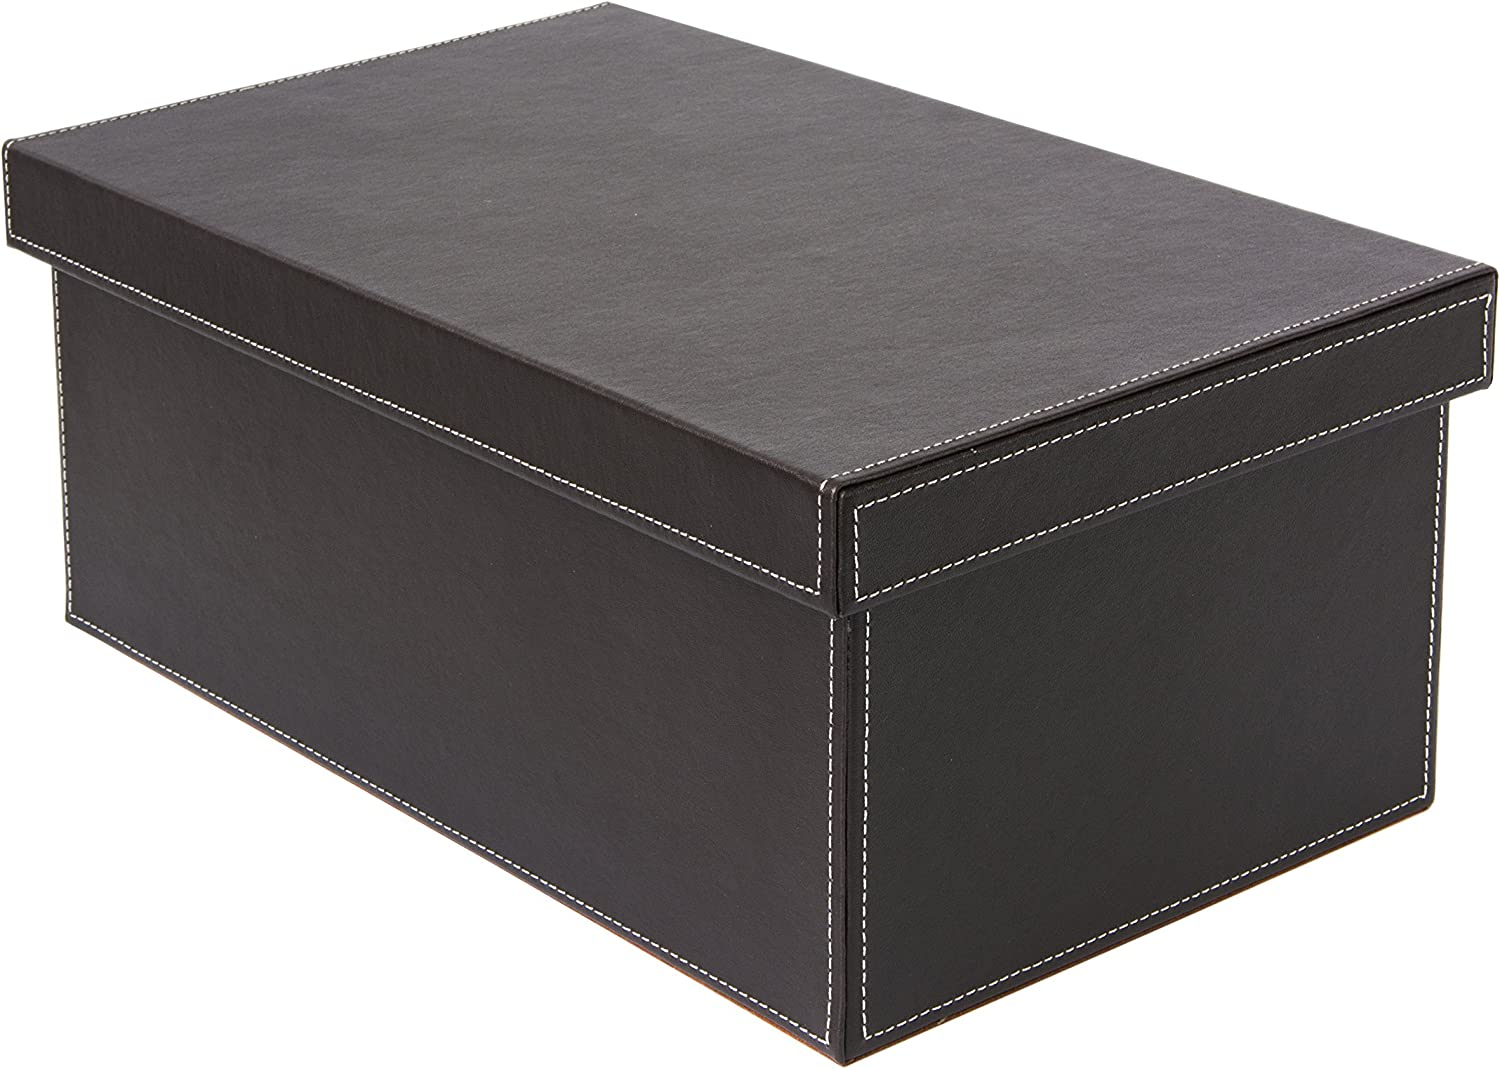 Osco Faux Leather DVD Storage Box - Brown,BPUDVD